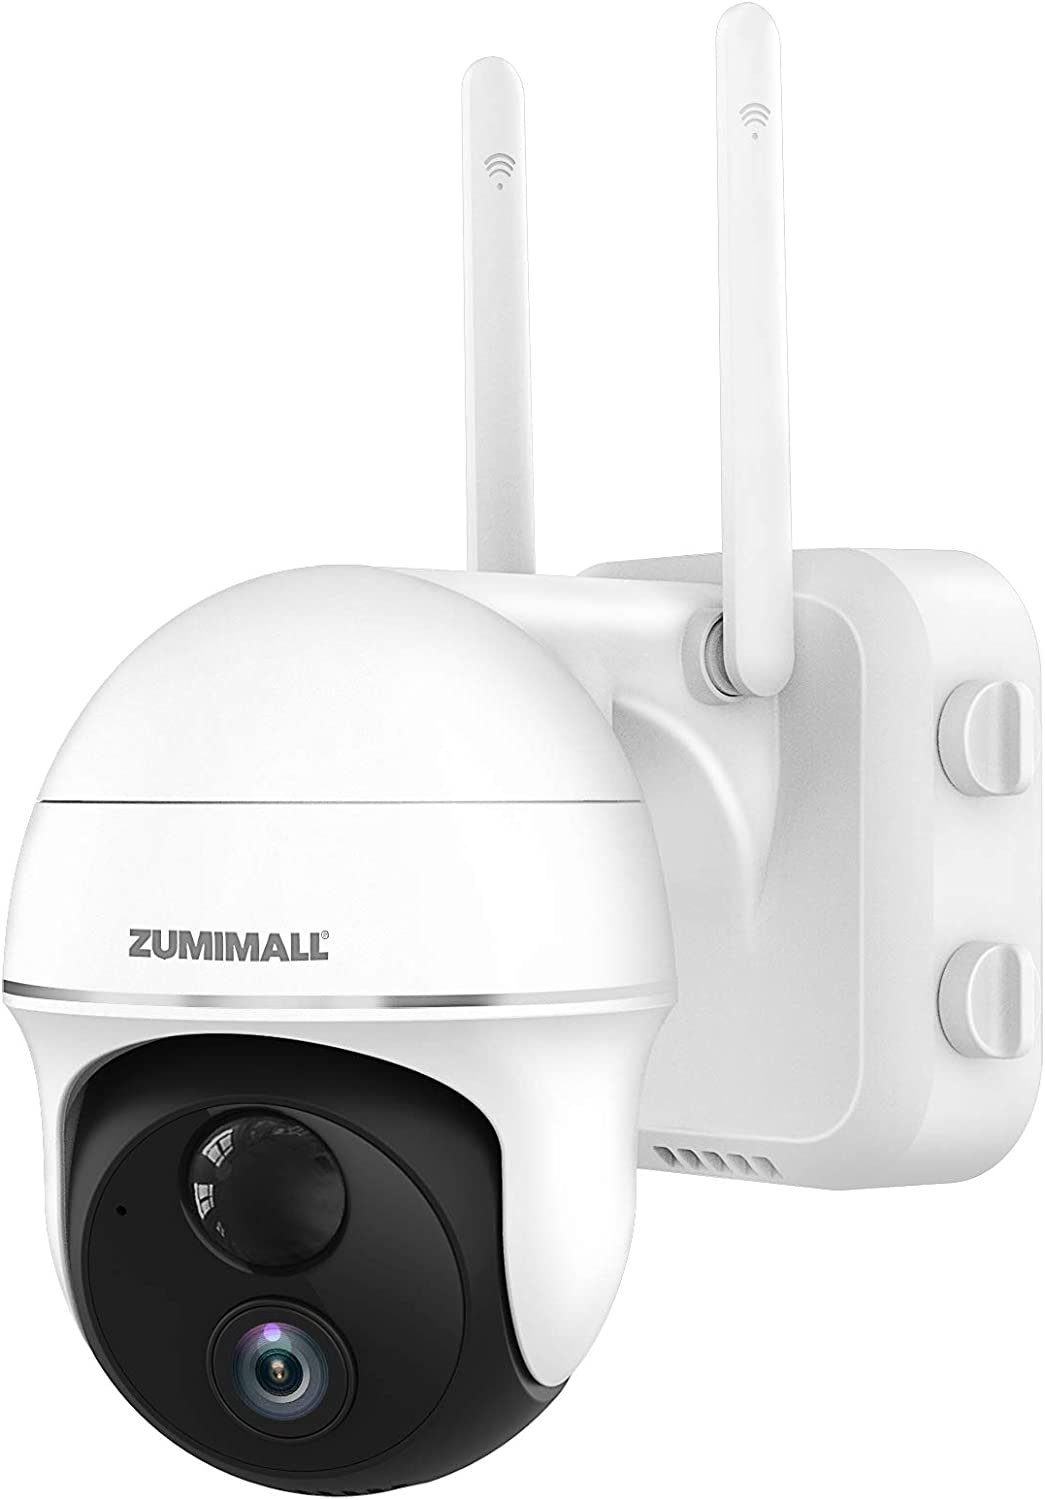 Security Camera Outdoor Wireless WiFi, Zumimall Pan Tilt Camera with 15000mAh Battery Powered for Home Surveillance, Motion Alert, 1080P Night Vision, 2-Way Audio, Waterproof, Encrypted Cloud/SD Slot